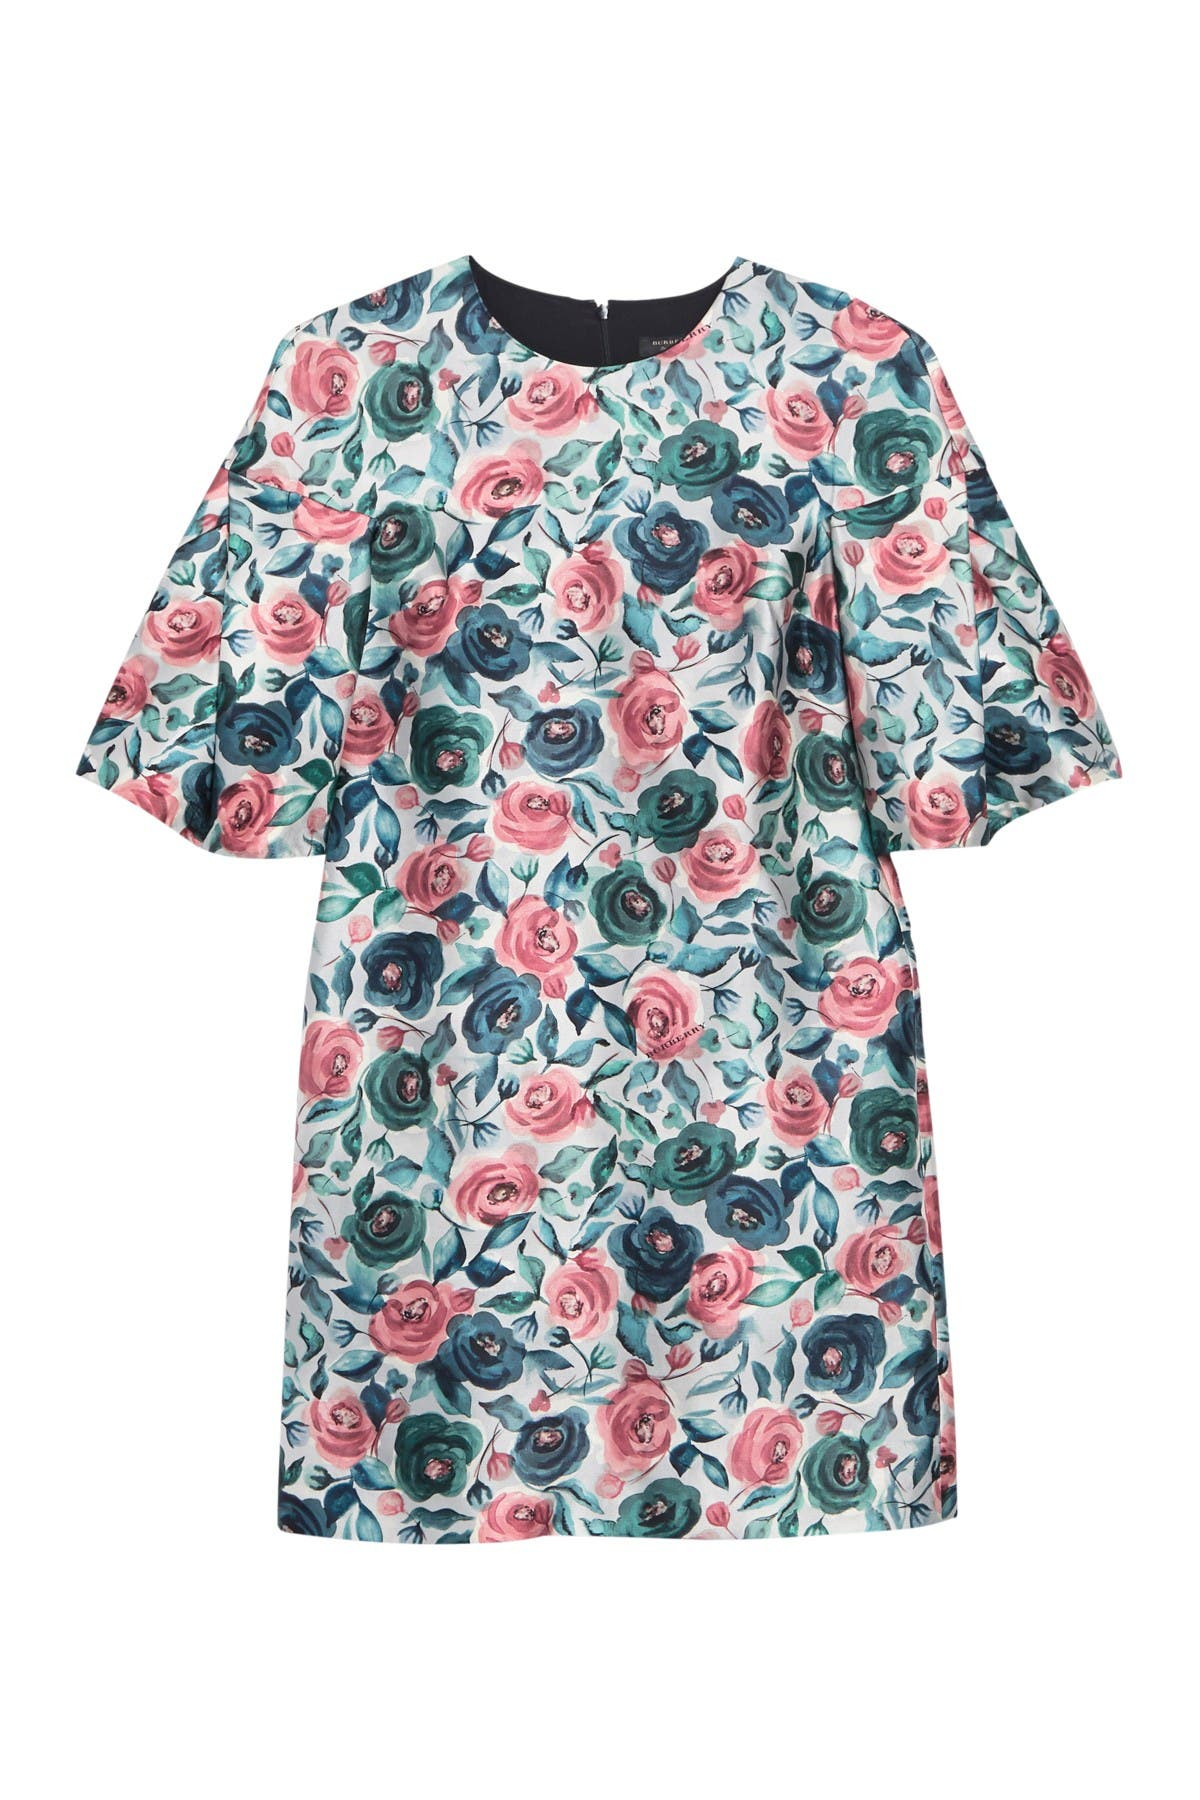 Image of Burberry Agatha Floral Dress